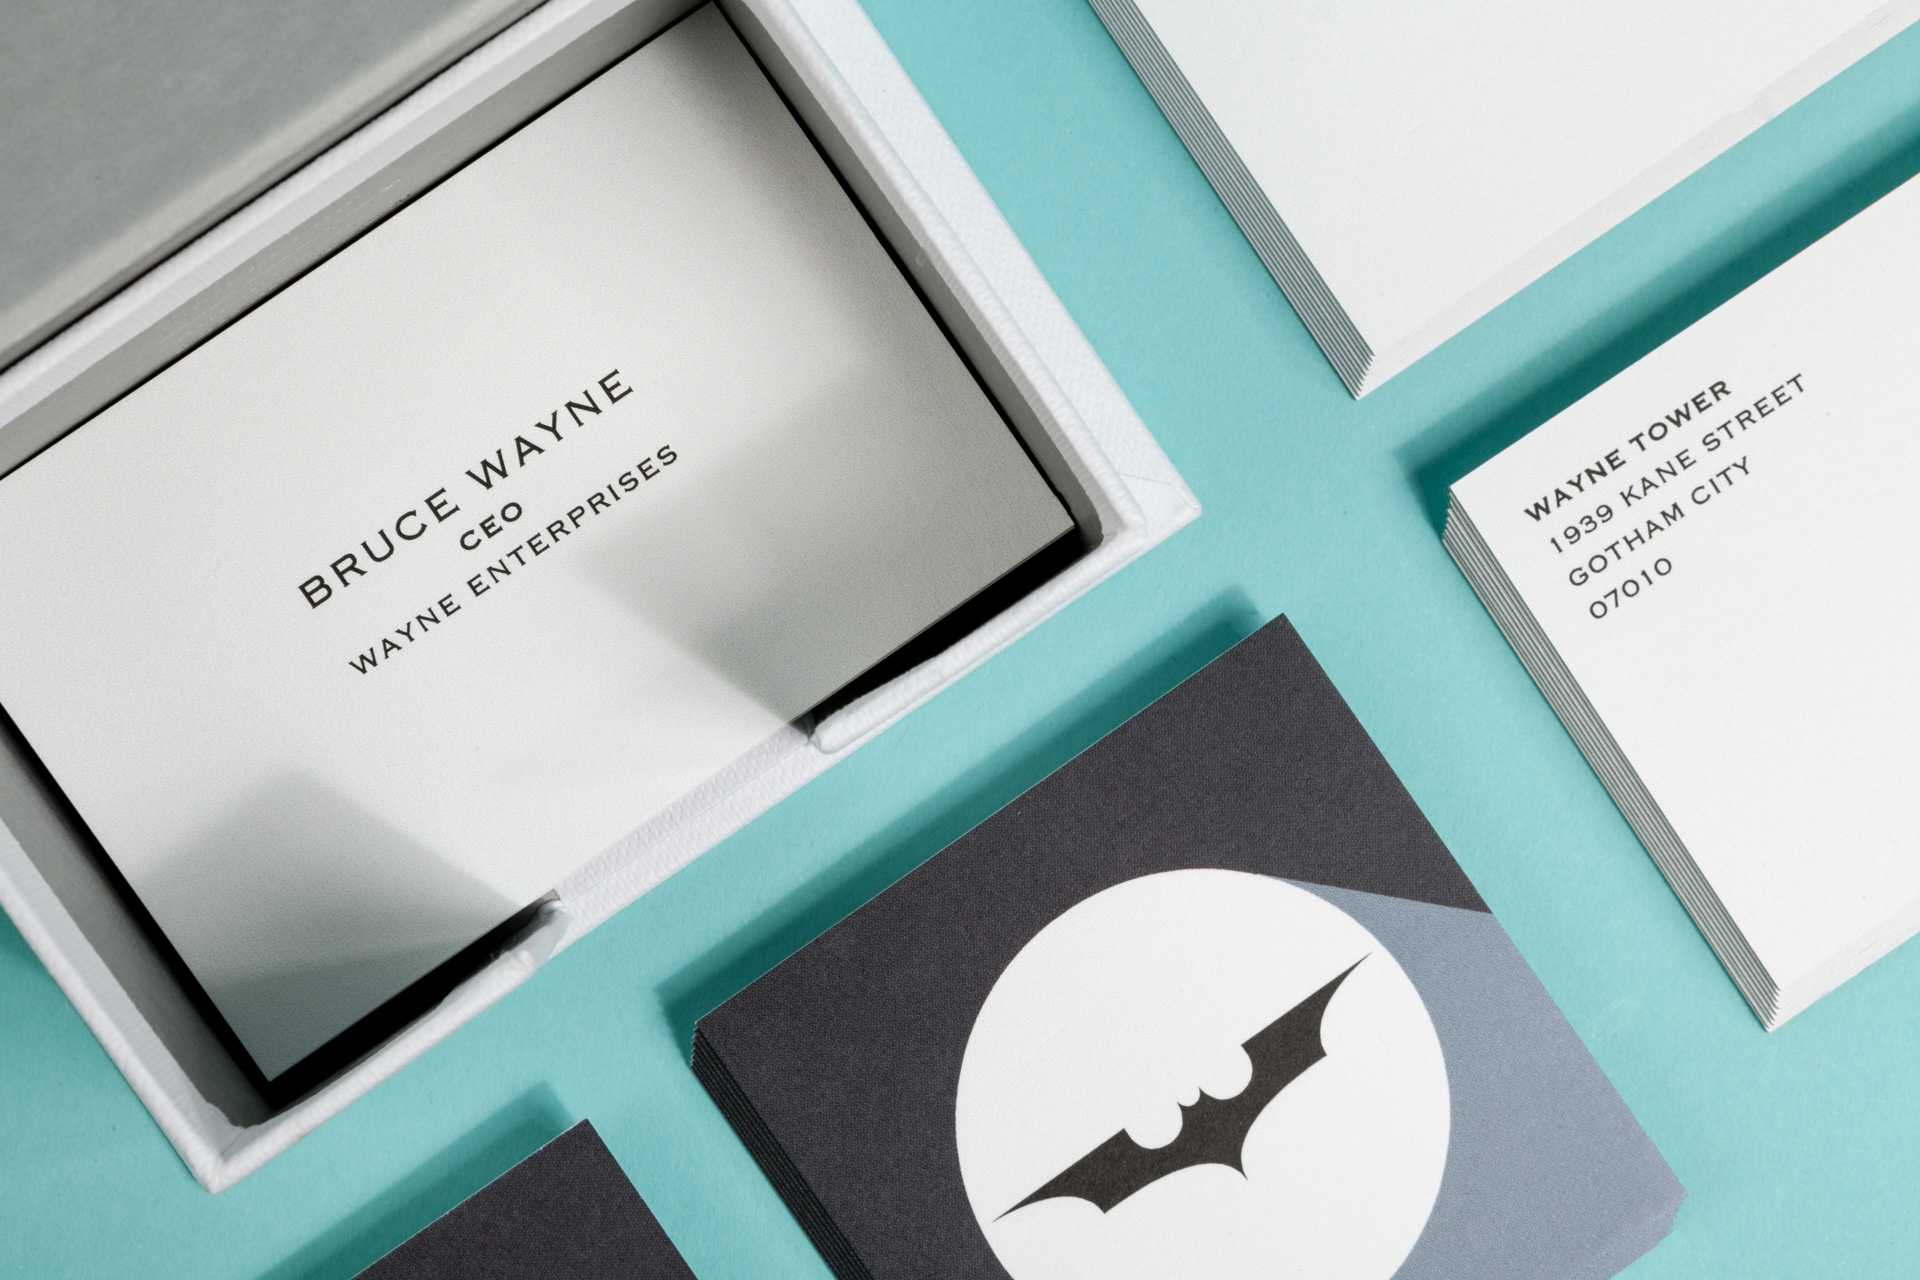 Third City — Not Bird or Plane, But Square Business Card